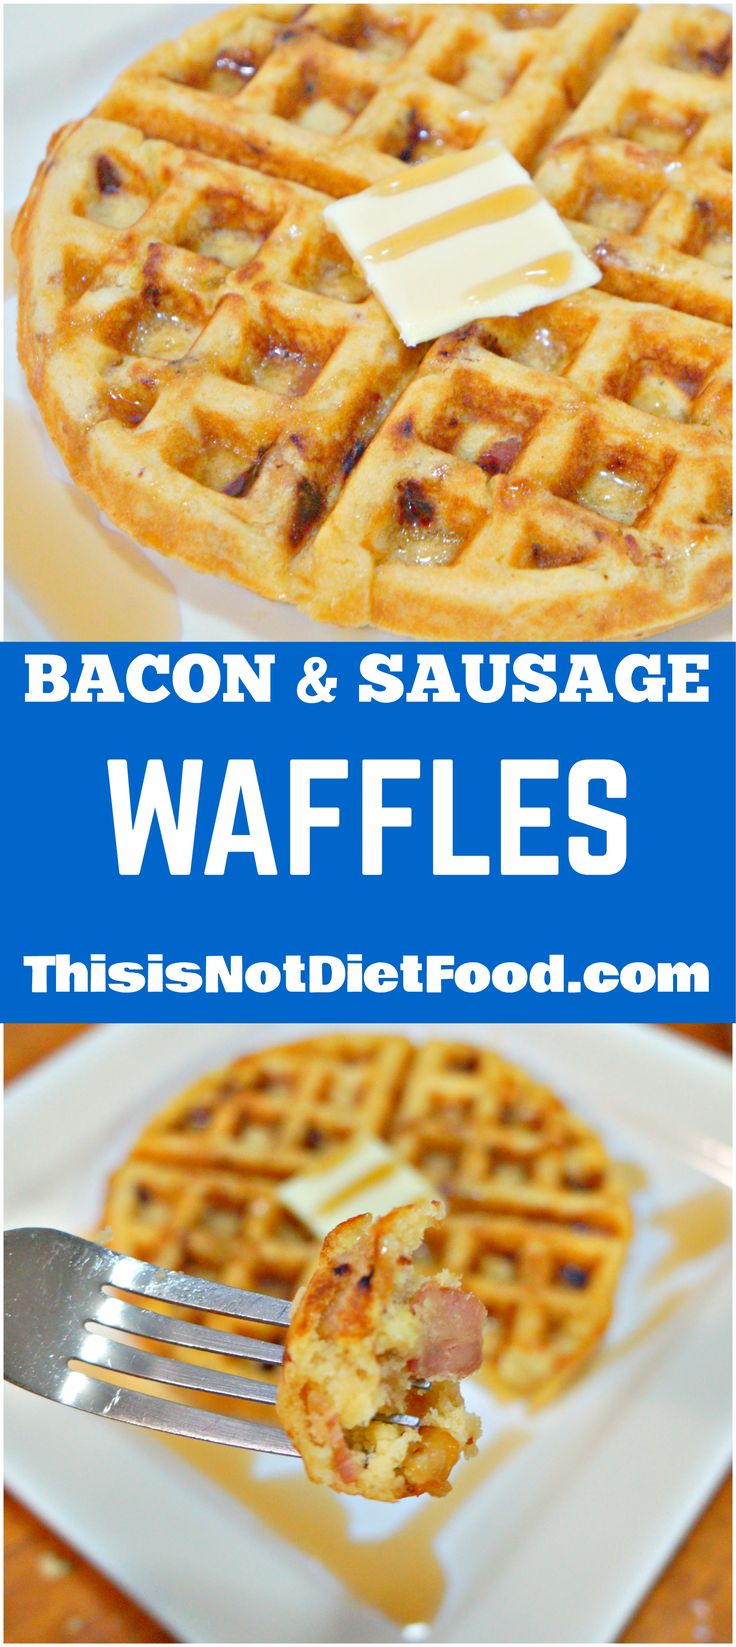 Bacon & Sausage Waffles. Easy breakfast recipe using boxed pancake and waffle mix.